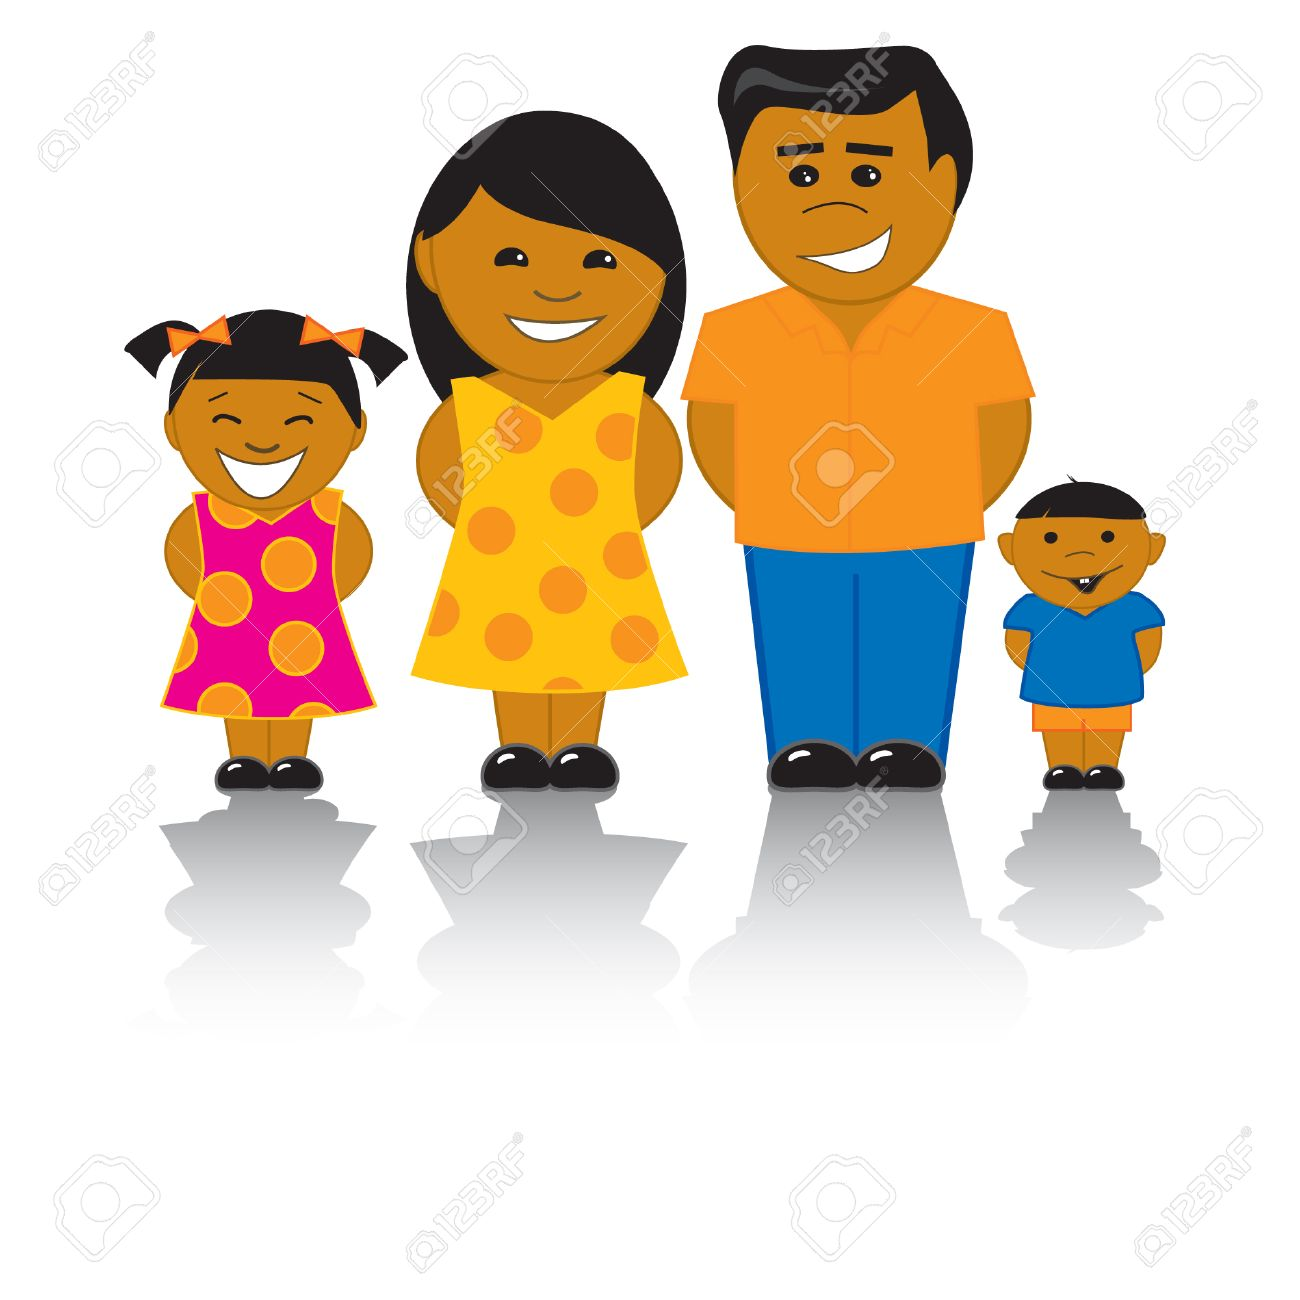 Hispanic Clipart at GetDrawings.com.